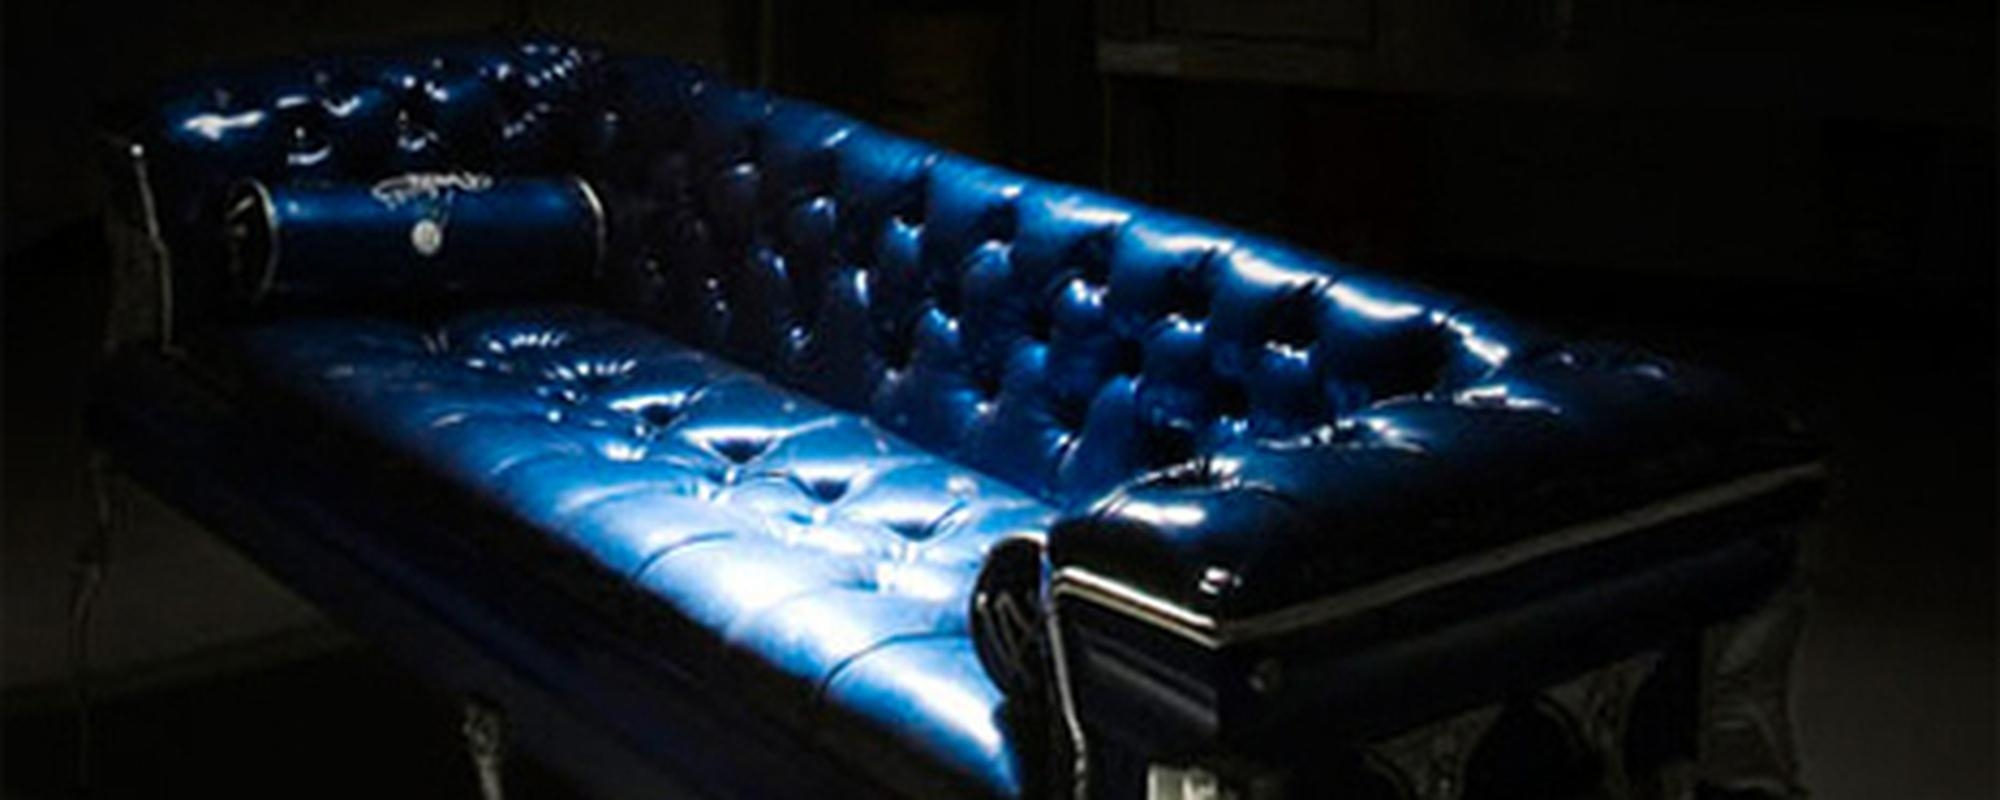 Coffin Sofa With Design Gallery 38198 | Kengire Inside Coffin Sofas (View 19 of 20)